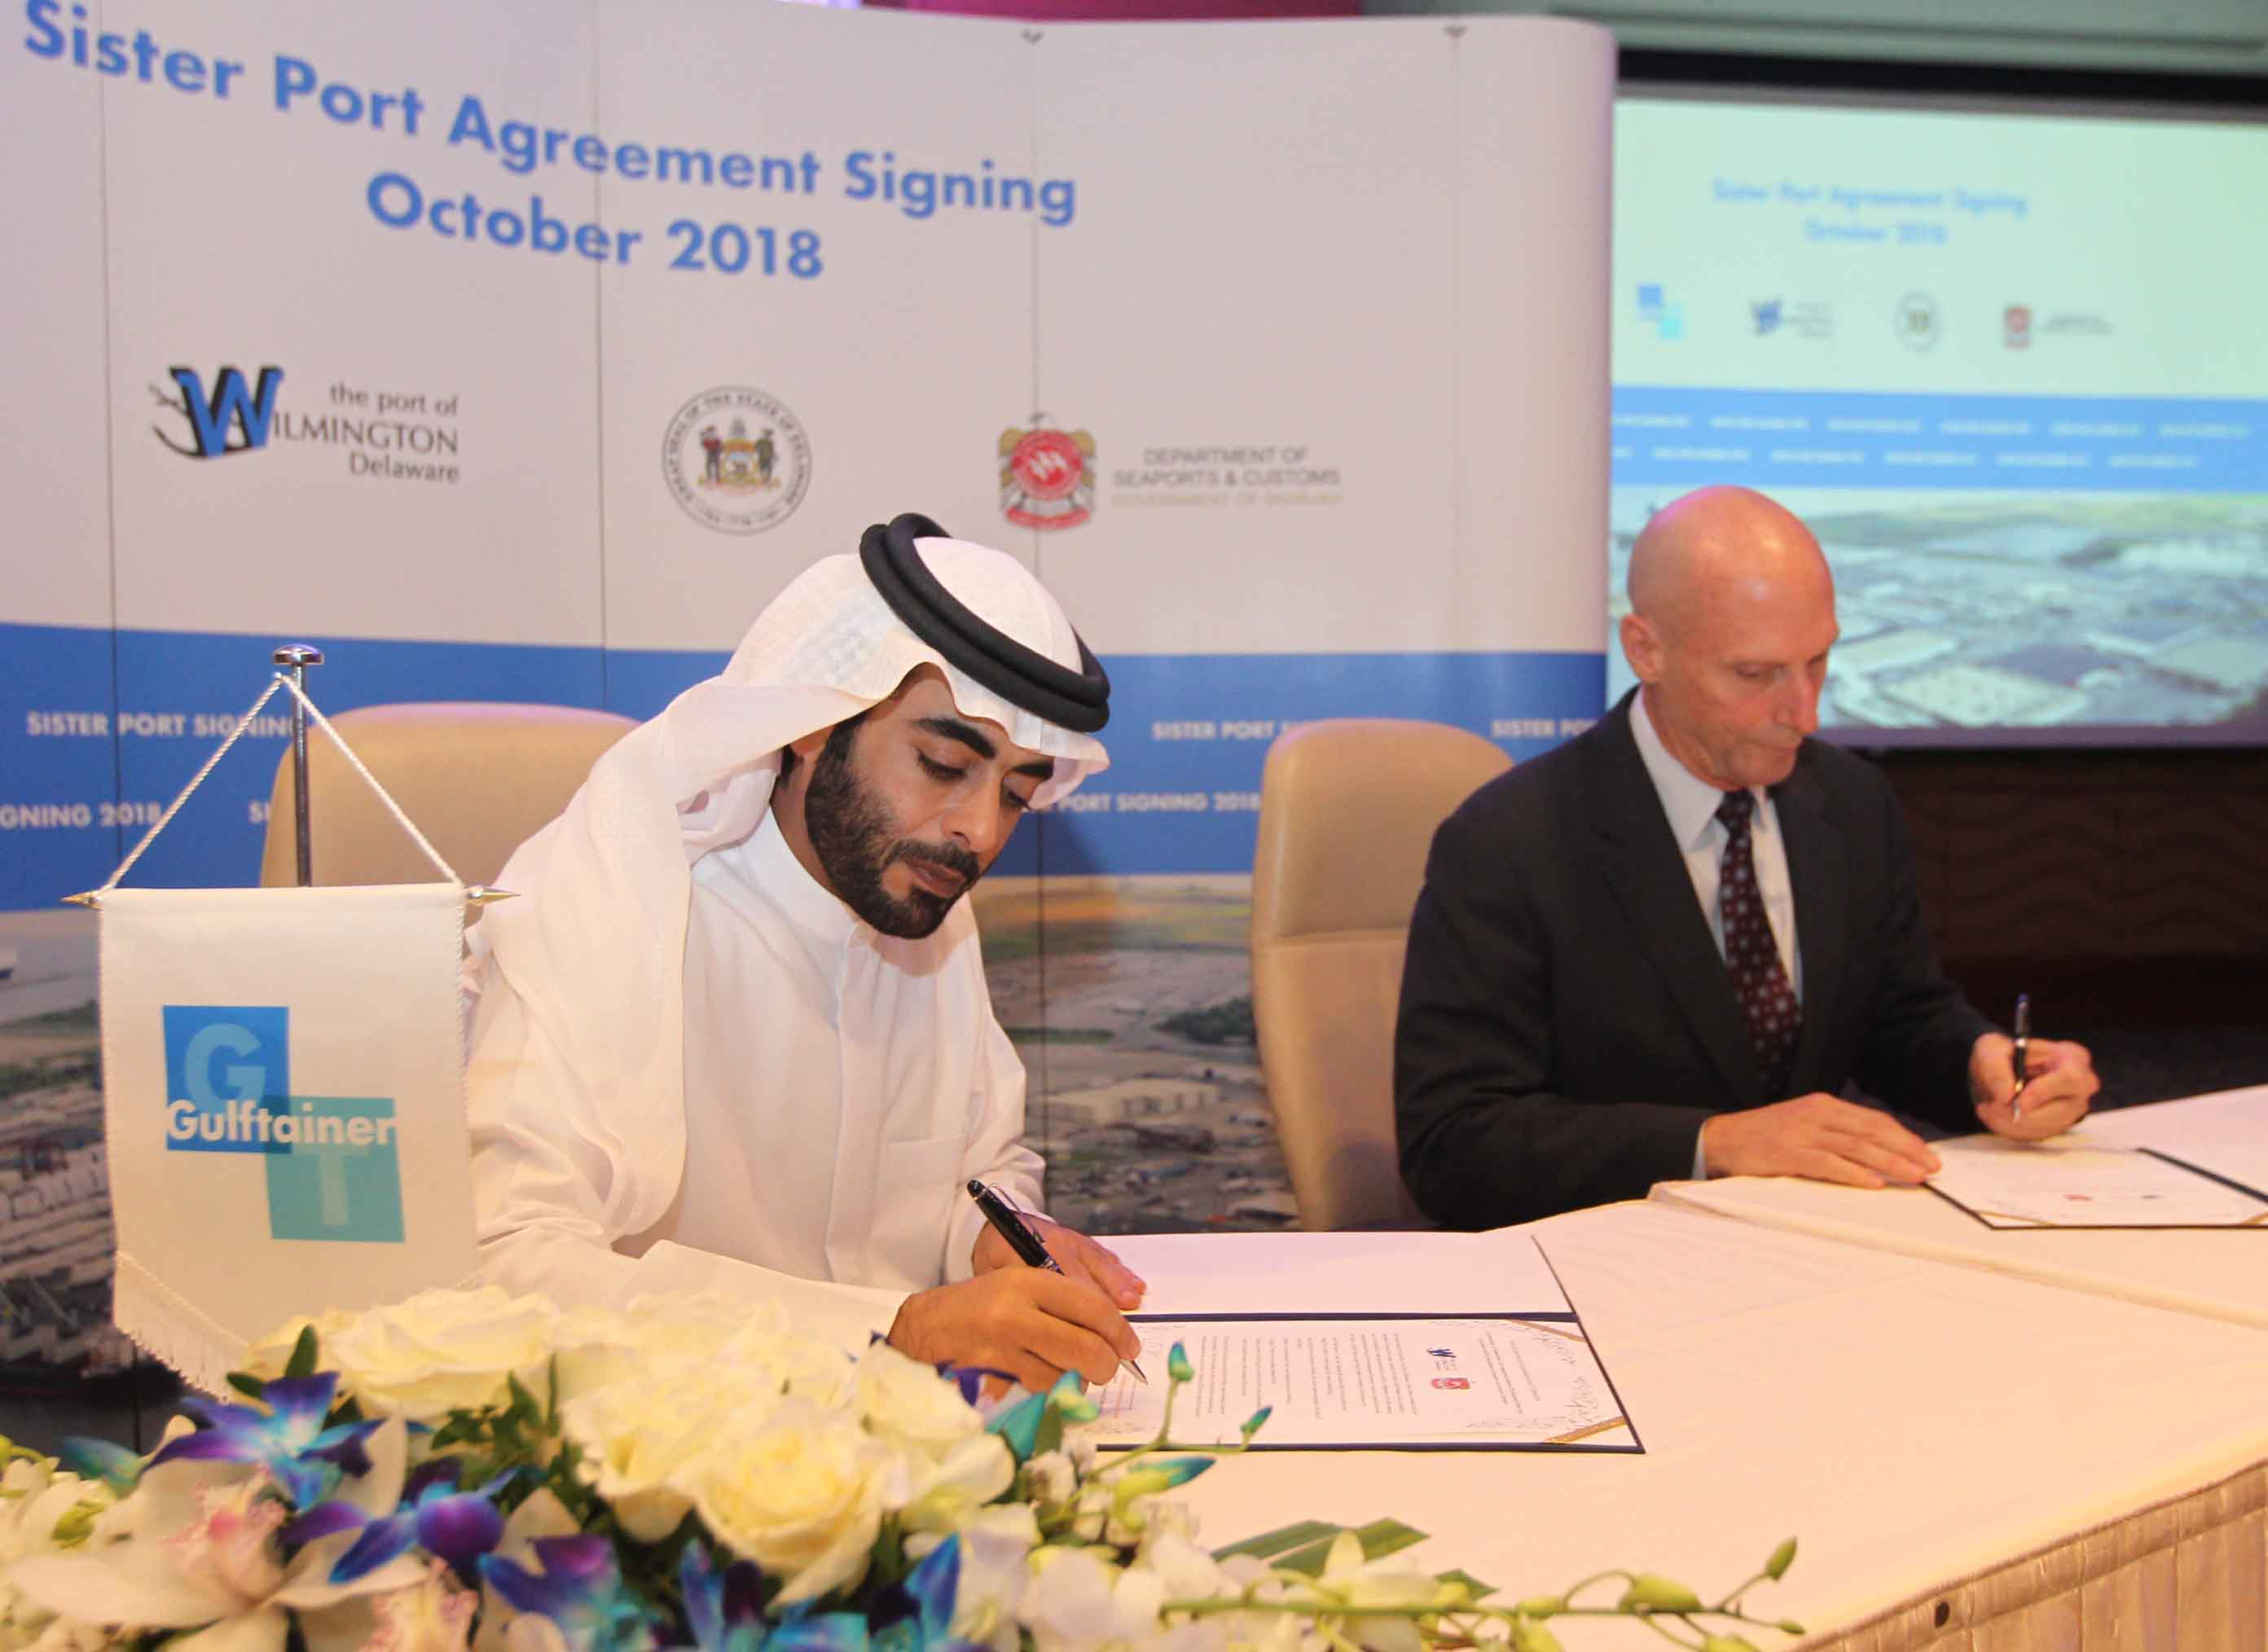 Gulftainer |Gulftainer: Sister Port Agreement Paves Way for